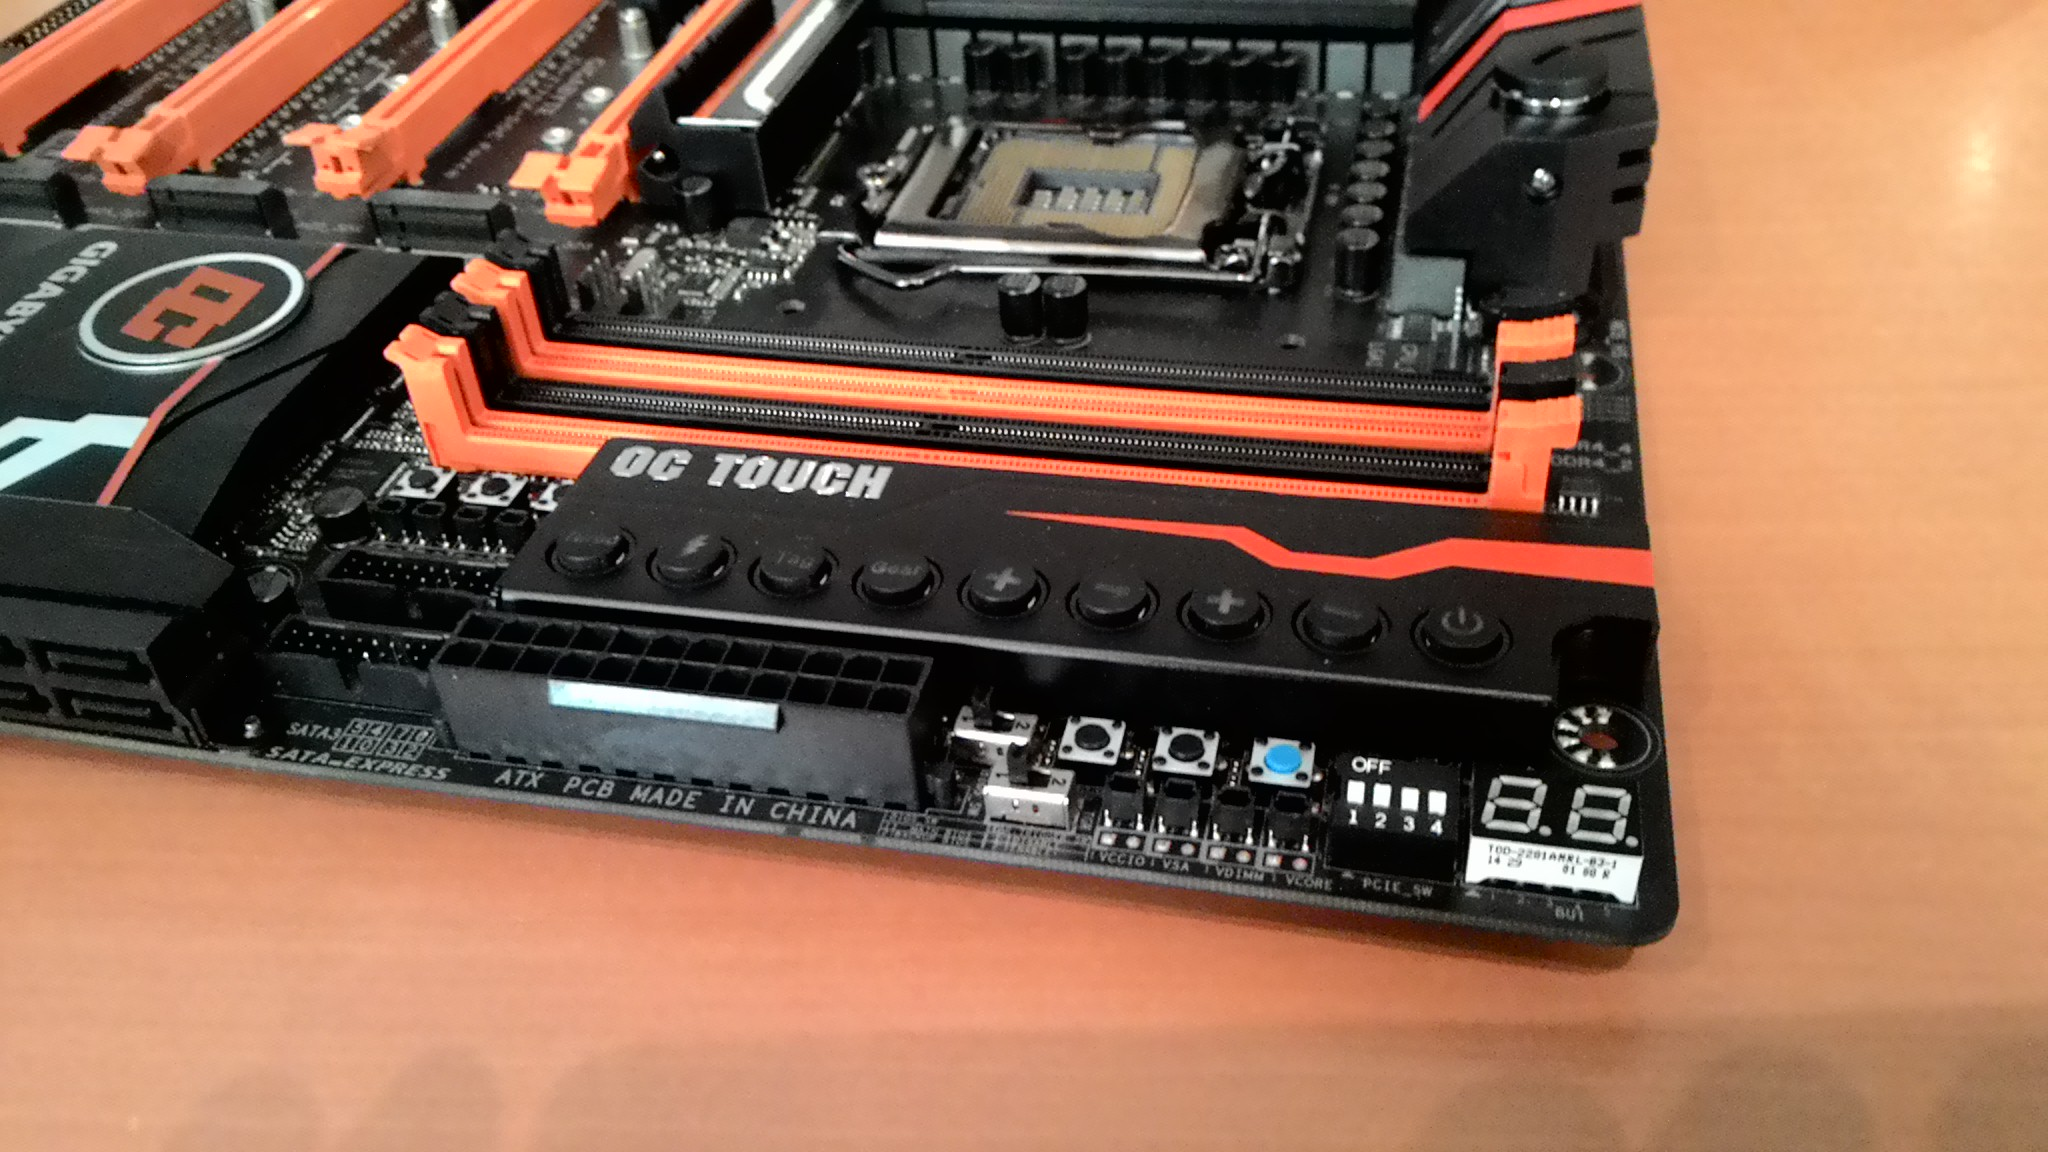 Gigabytes Impressive Z170x Soc Force Motherboard Unveiled Built Gigabyte Ga Gaming G1 Socket 1151 For Overclockers With Several Tuning Switches